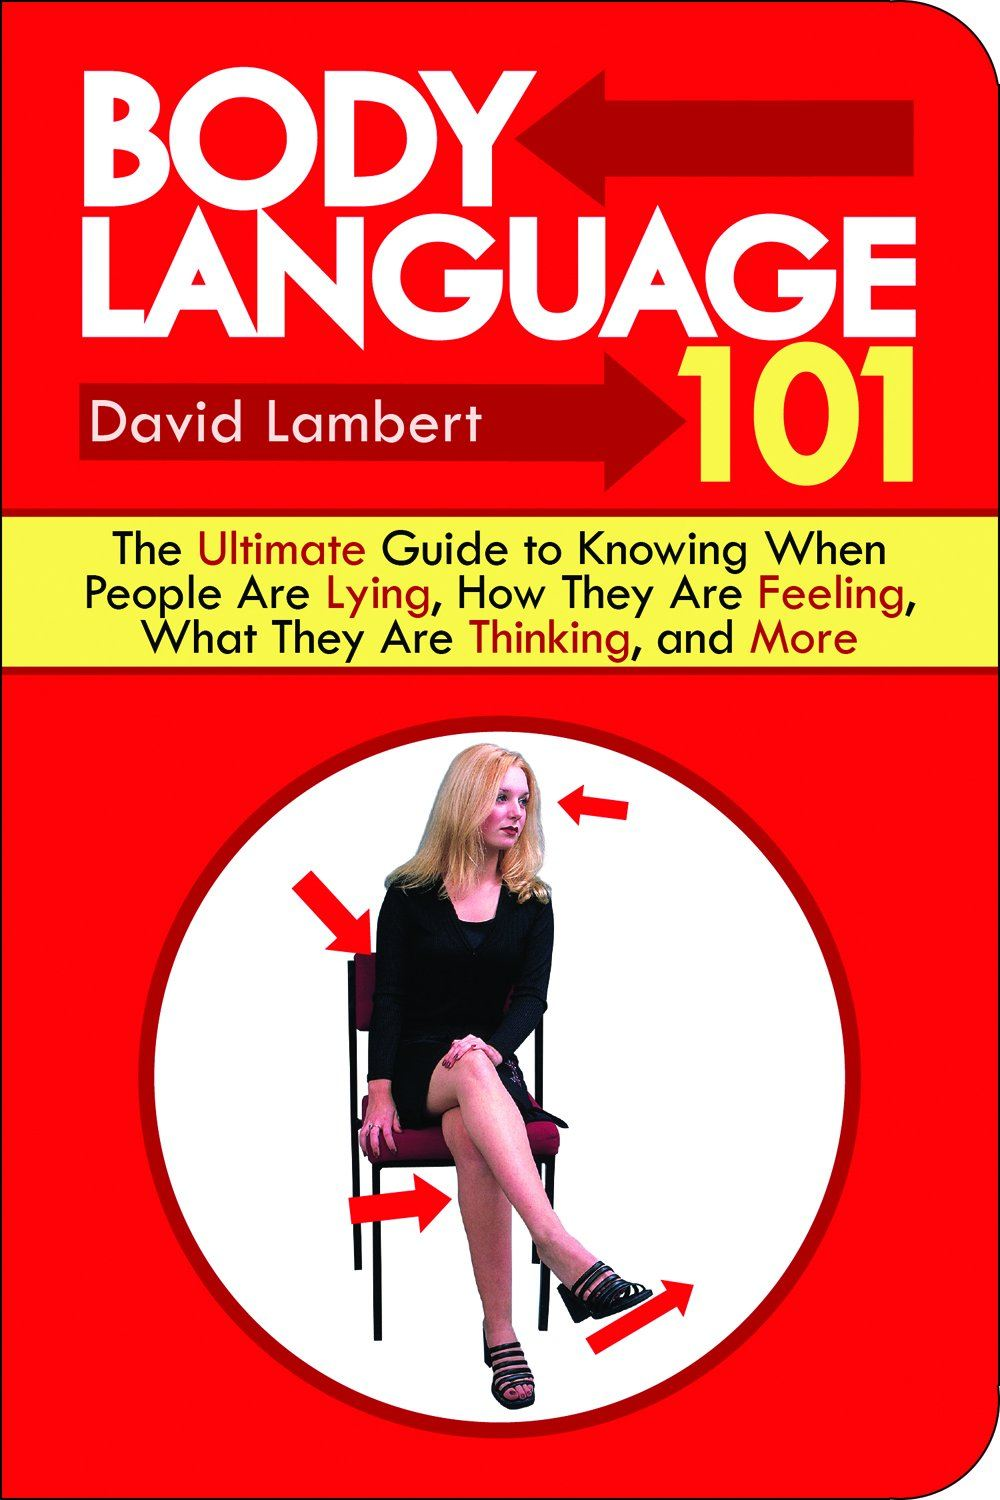 Body Language 101: The Ultimate Guide to Knowing When People Are Lying, How They Are Feeling, What They Are Thinking, and More By: David Lambert